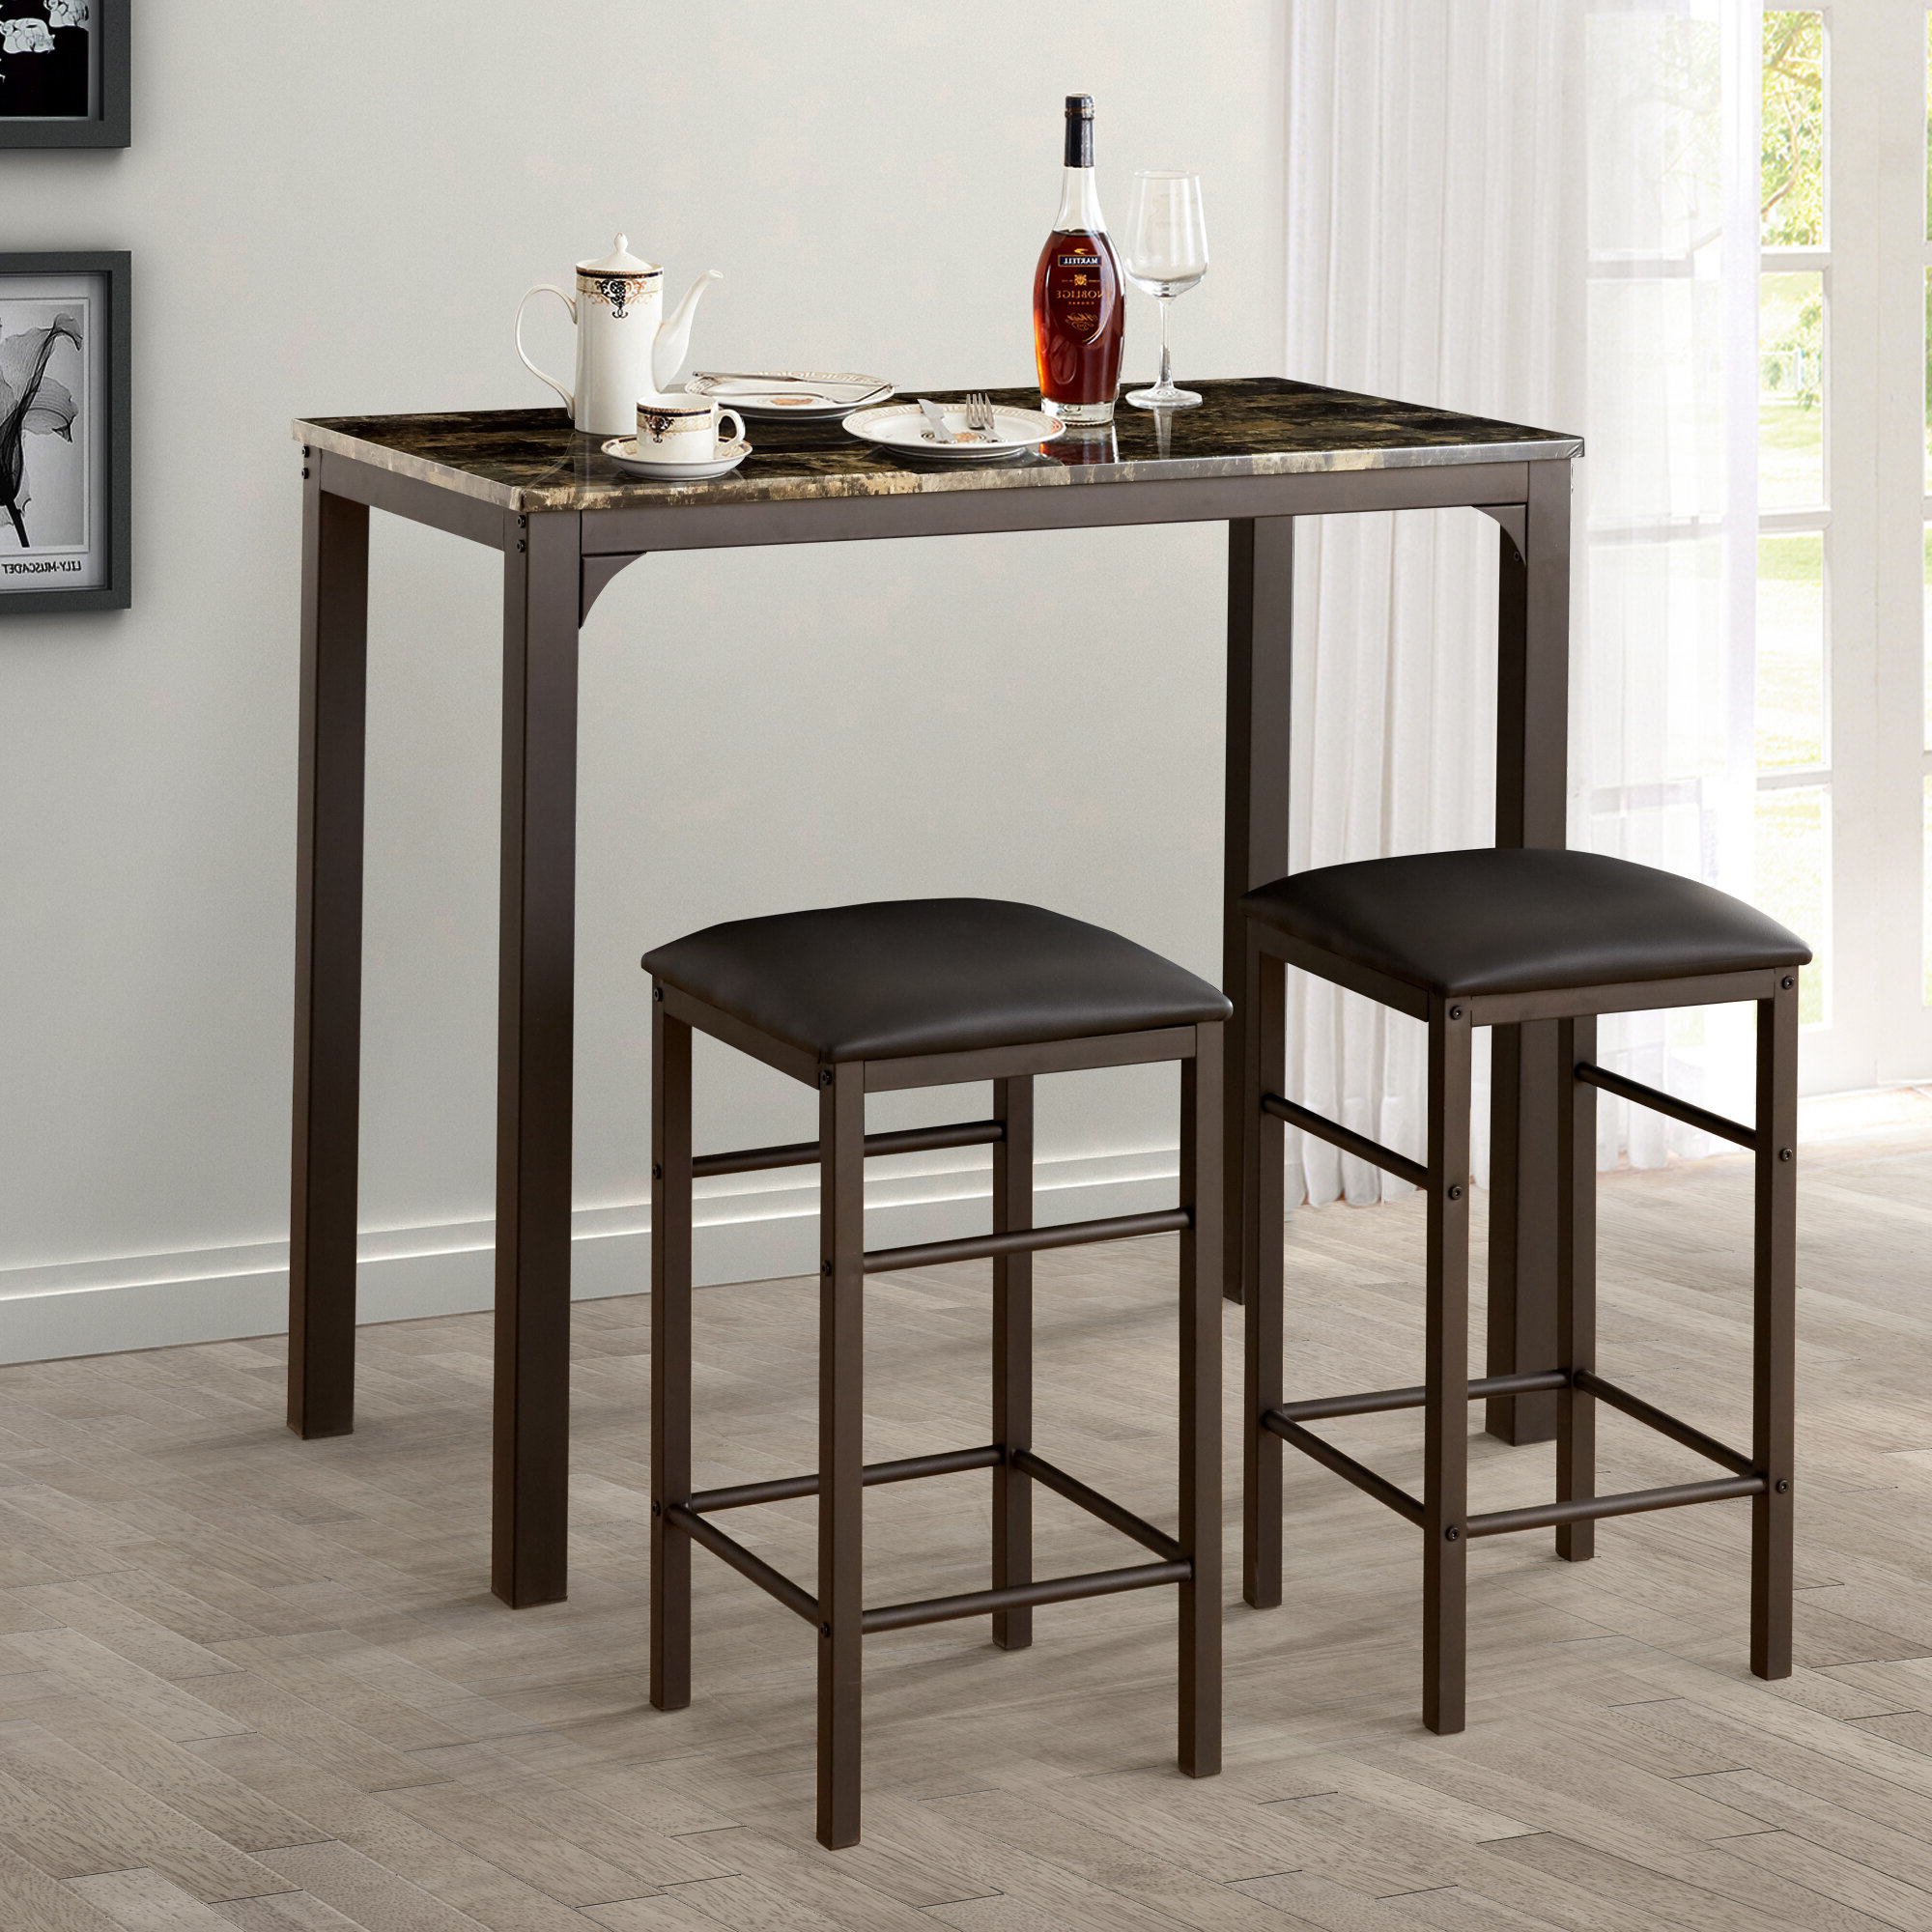 Fashionable Hood Canal 3 Piece Dining Sets For Lillard 3 Piece Breakfast Nook Dining Set (View 4 of 20)